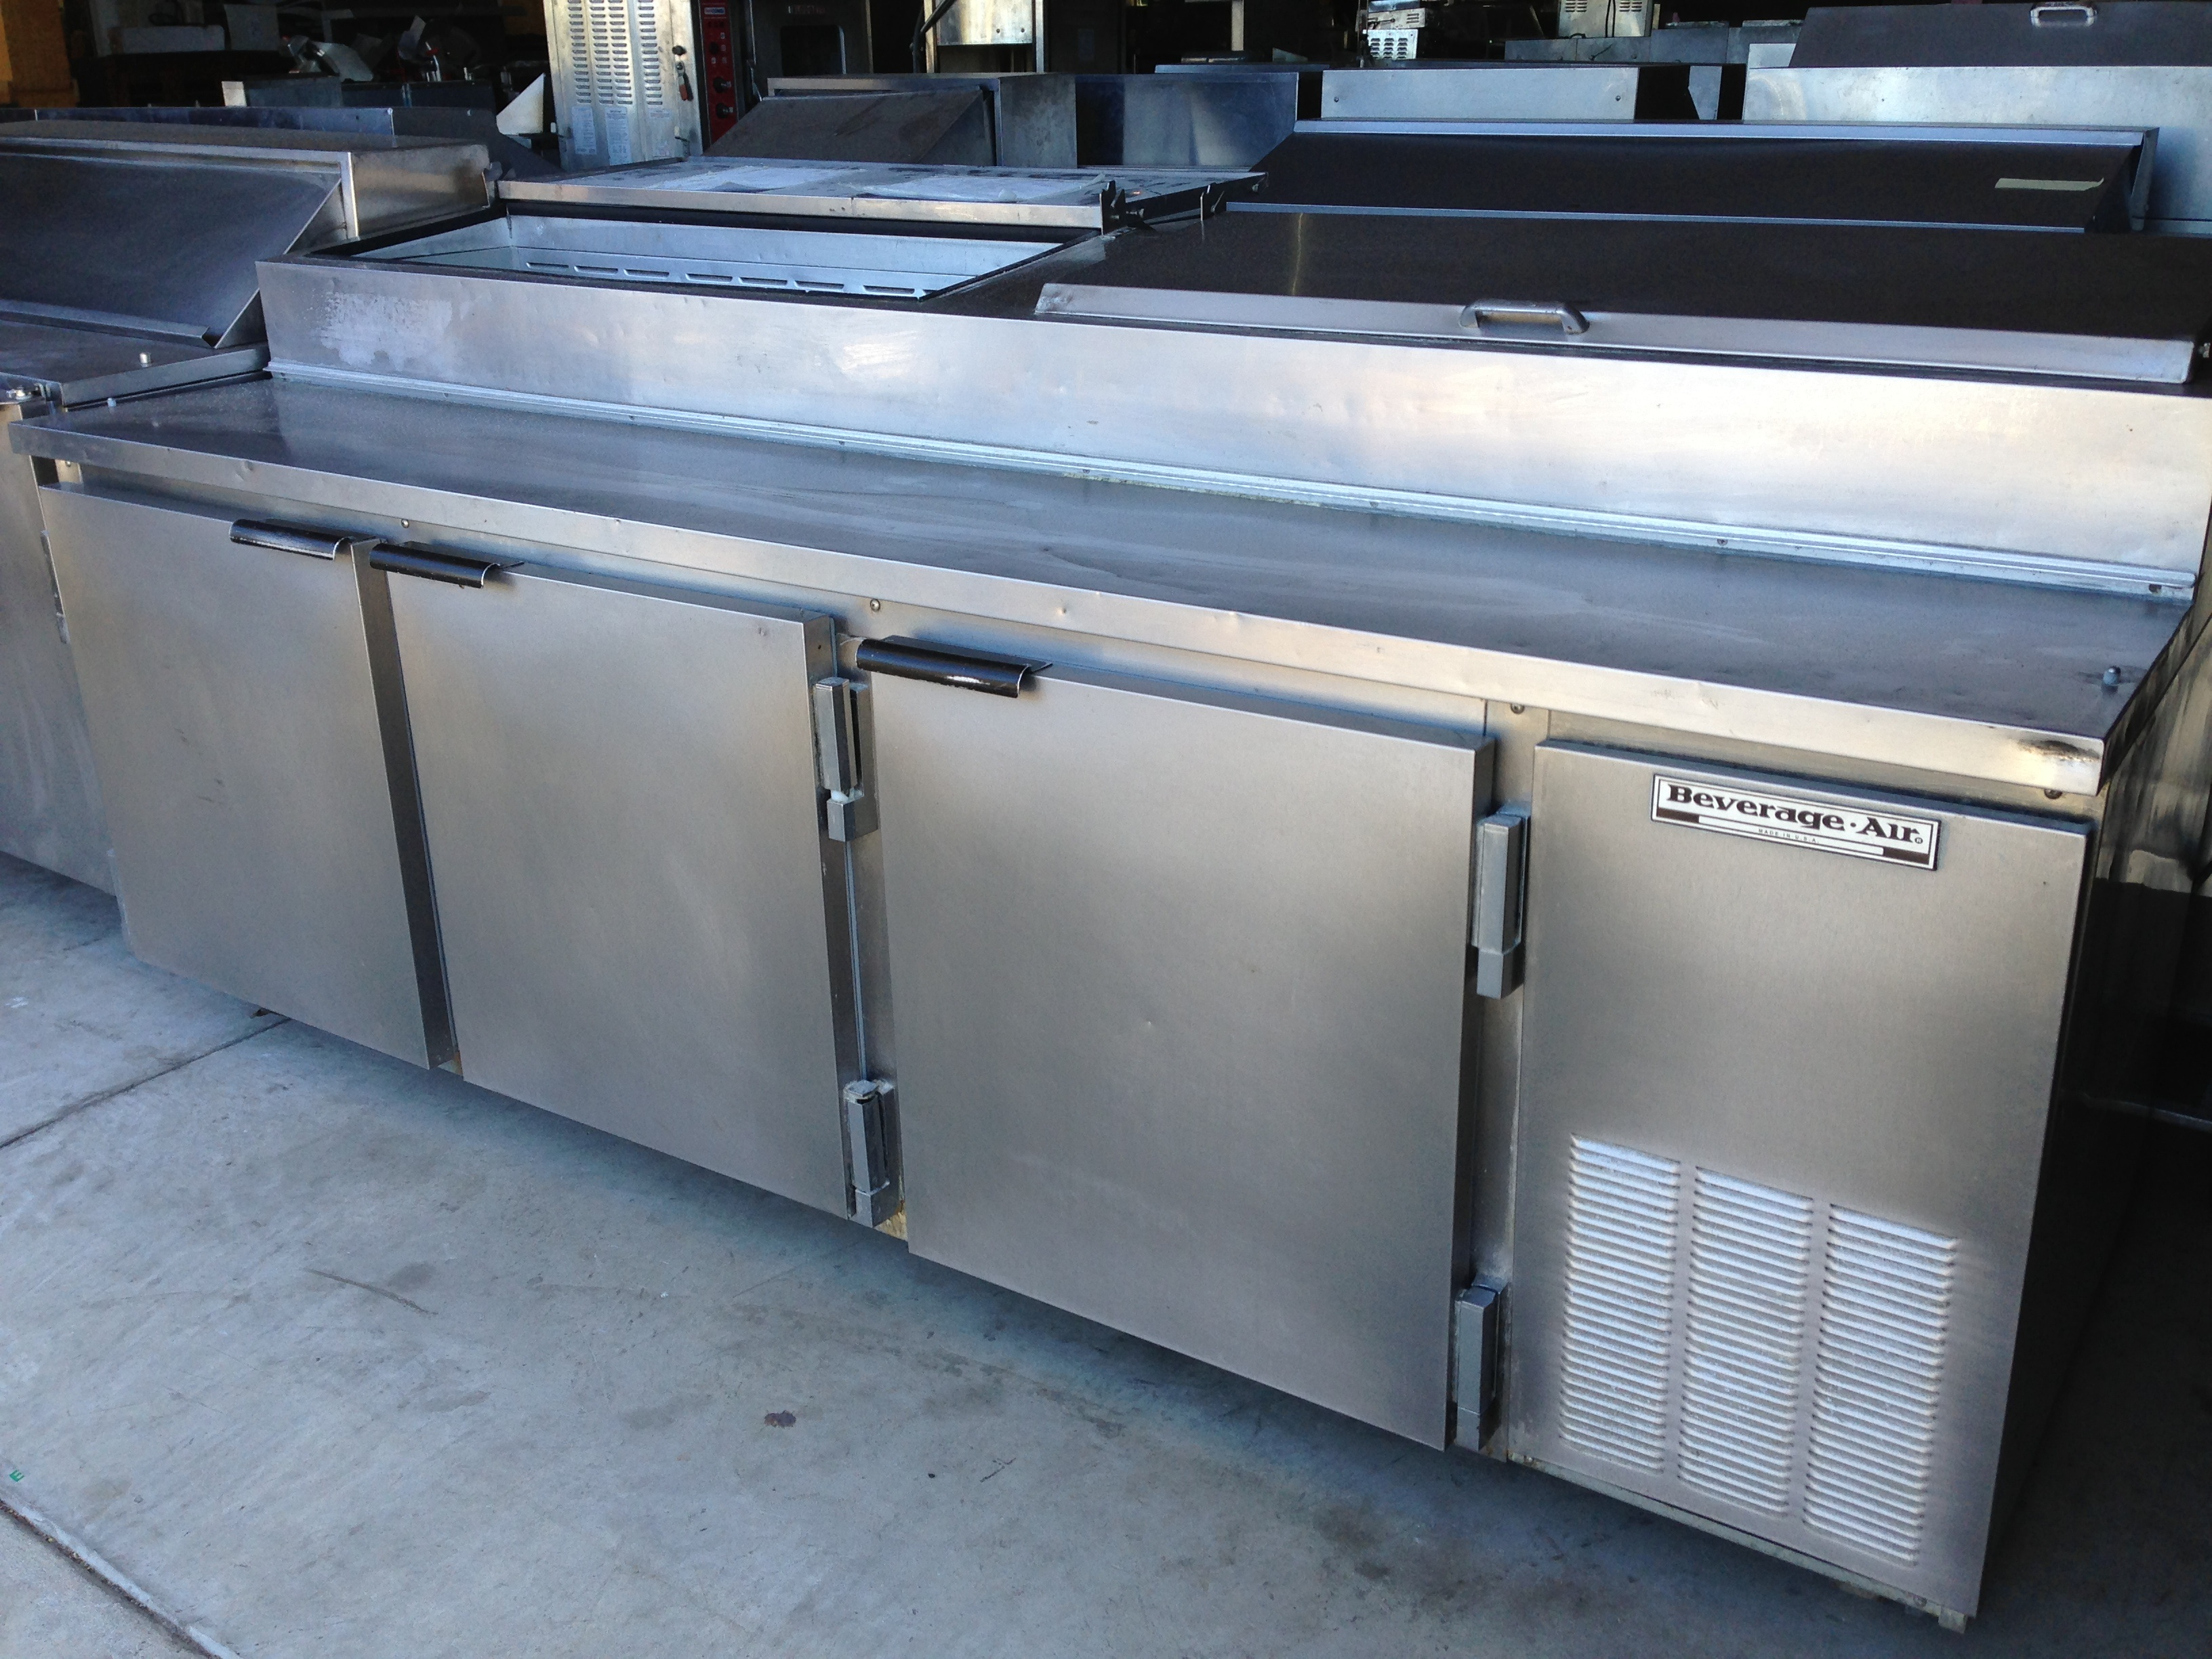 Used Sandwich Prep Table Refrigerated The Science of Sandwich Shop Prep Tables | One Fat Frog